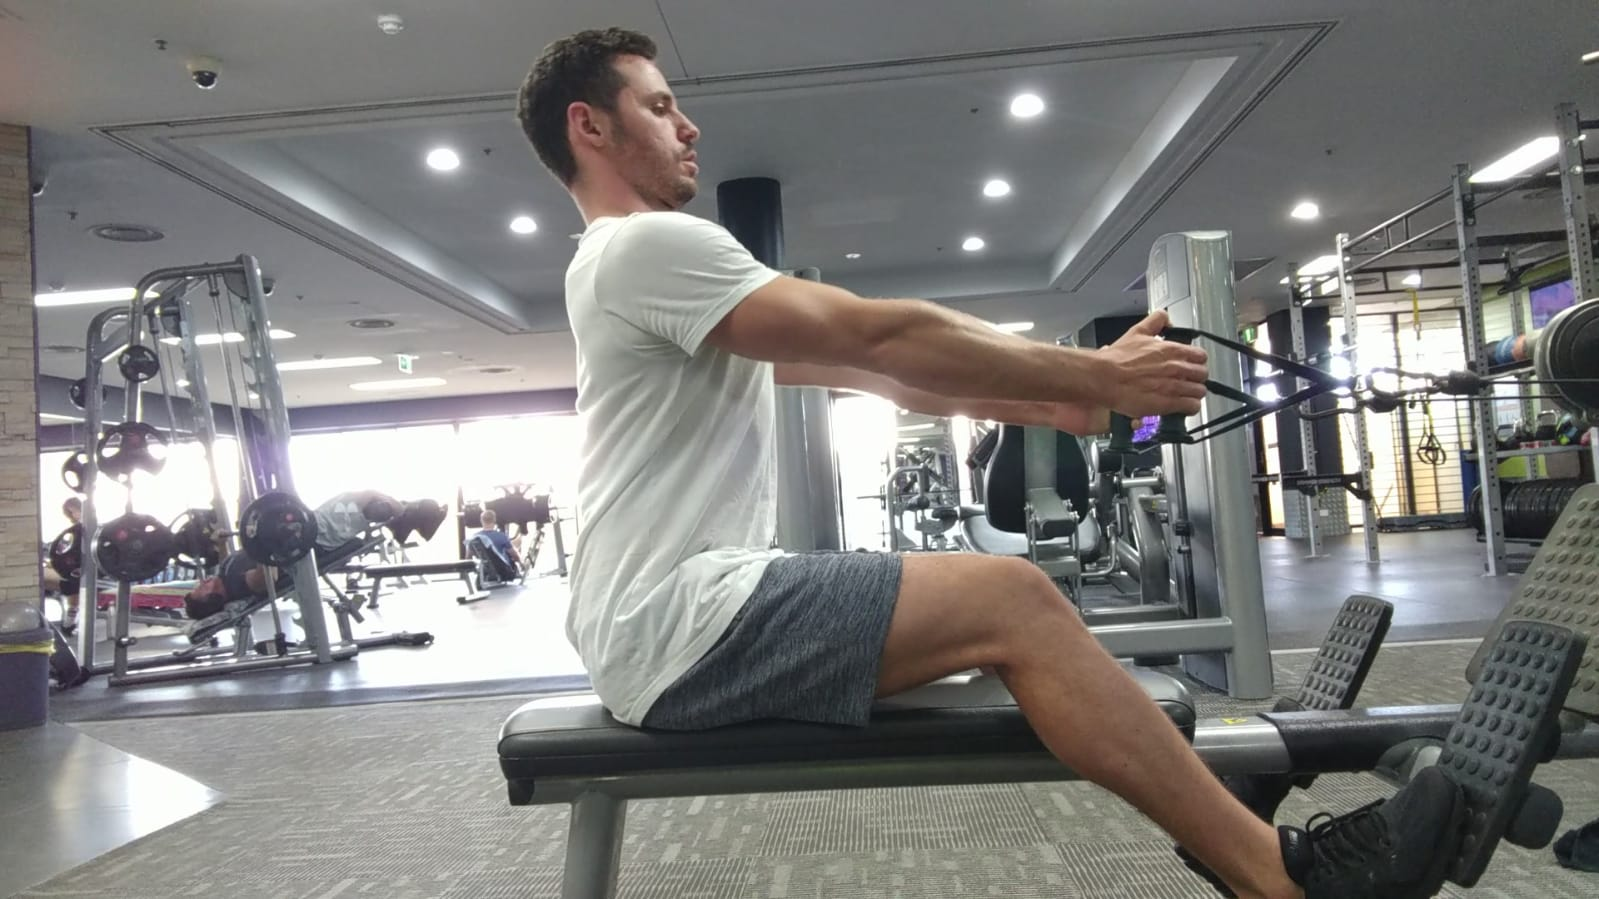 posture during exercise